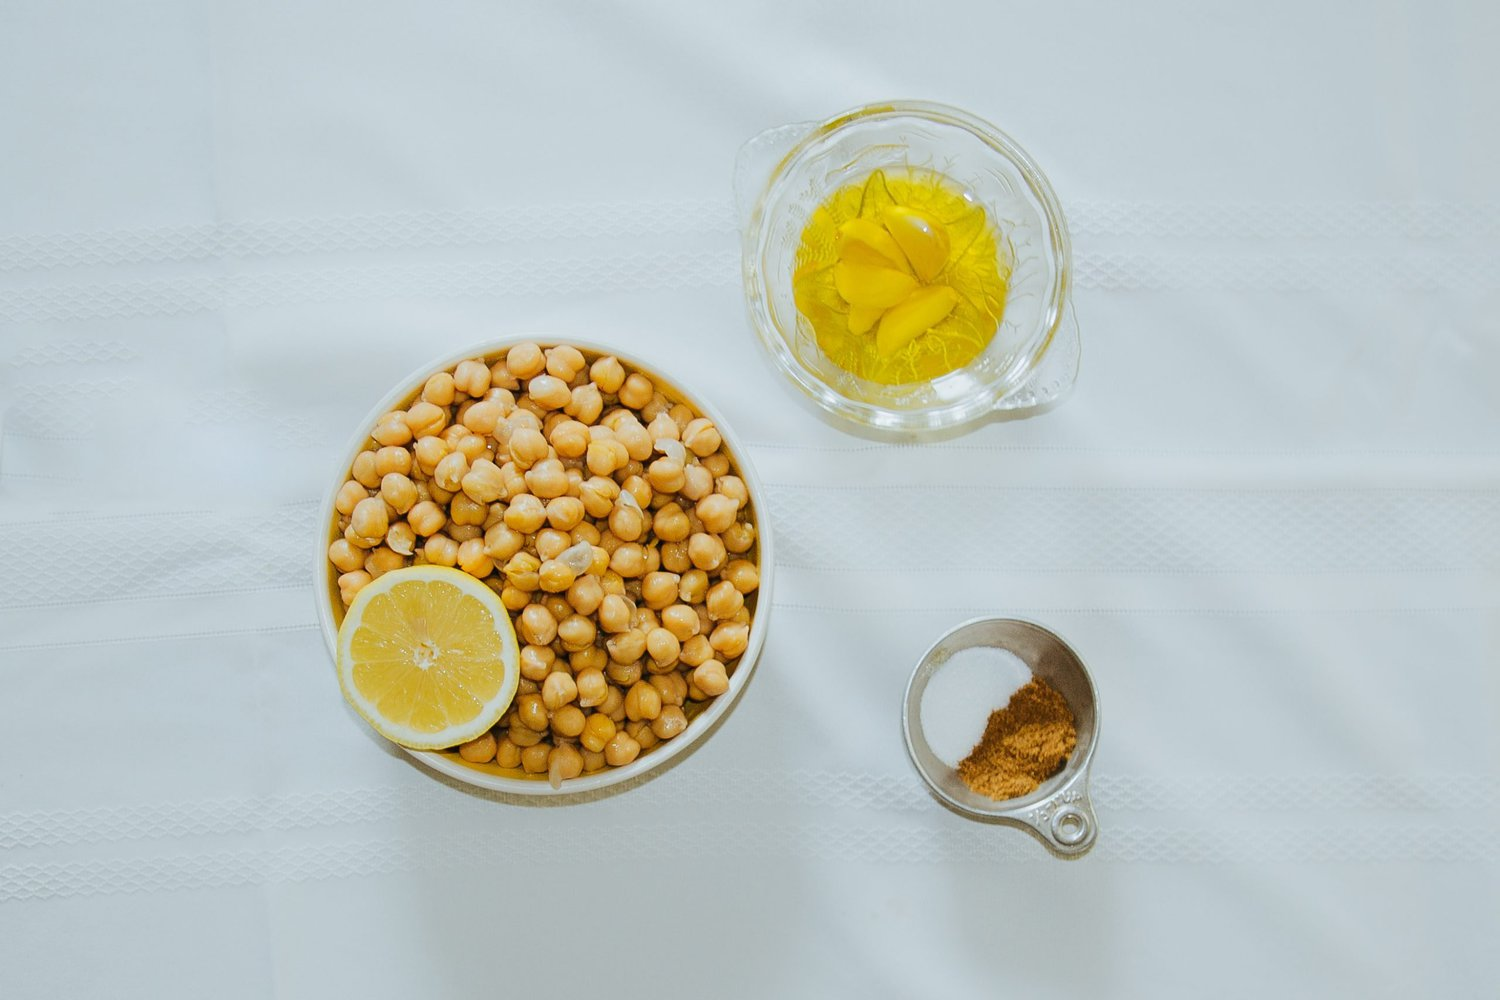 Ingredients for hummus without tahini.